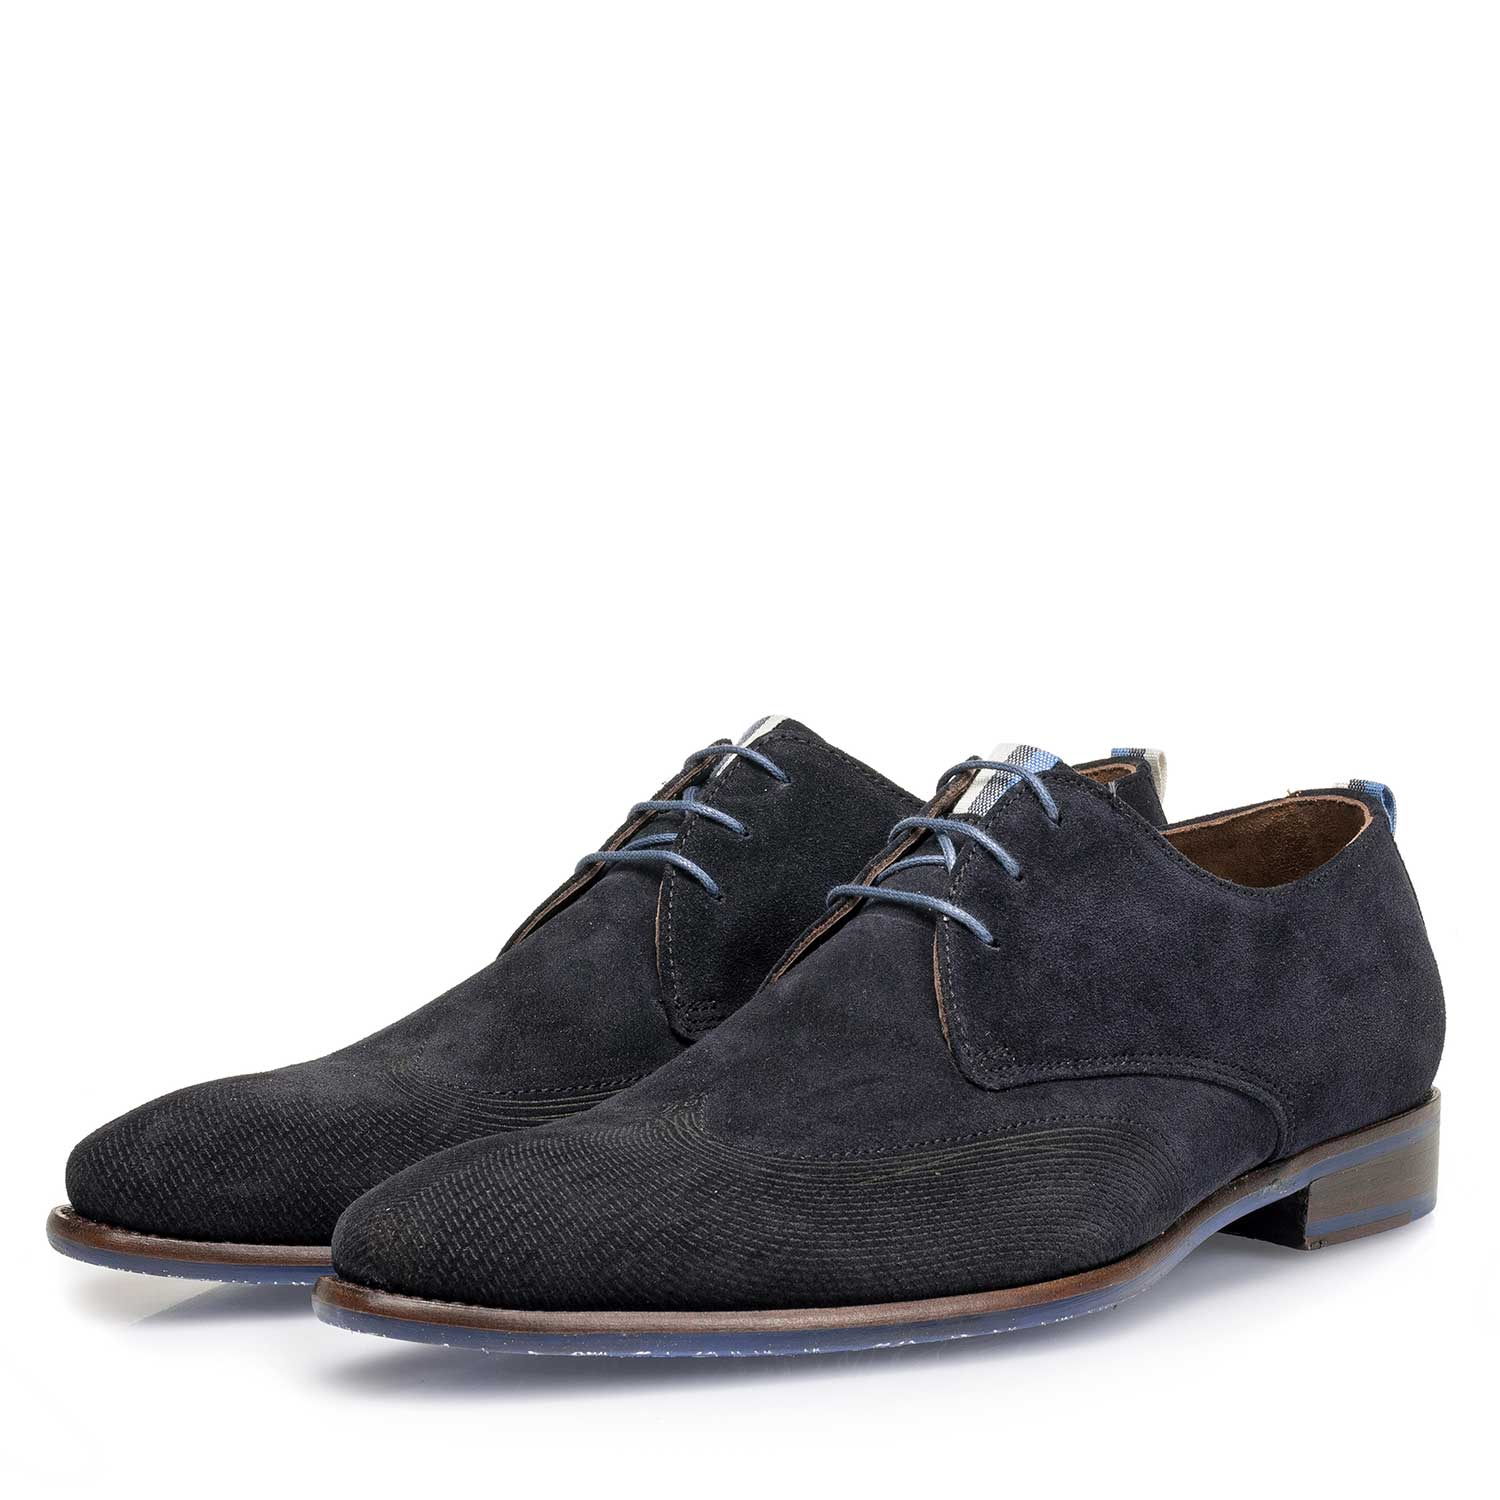 18082/03 - Dark blue suede leather lace shoe with a laser-cut pattern